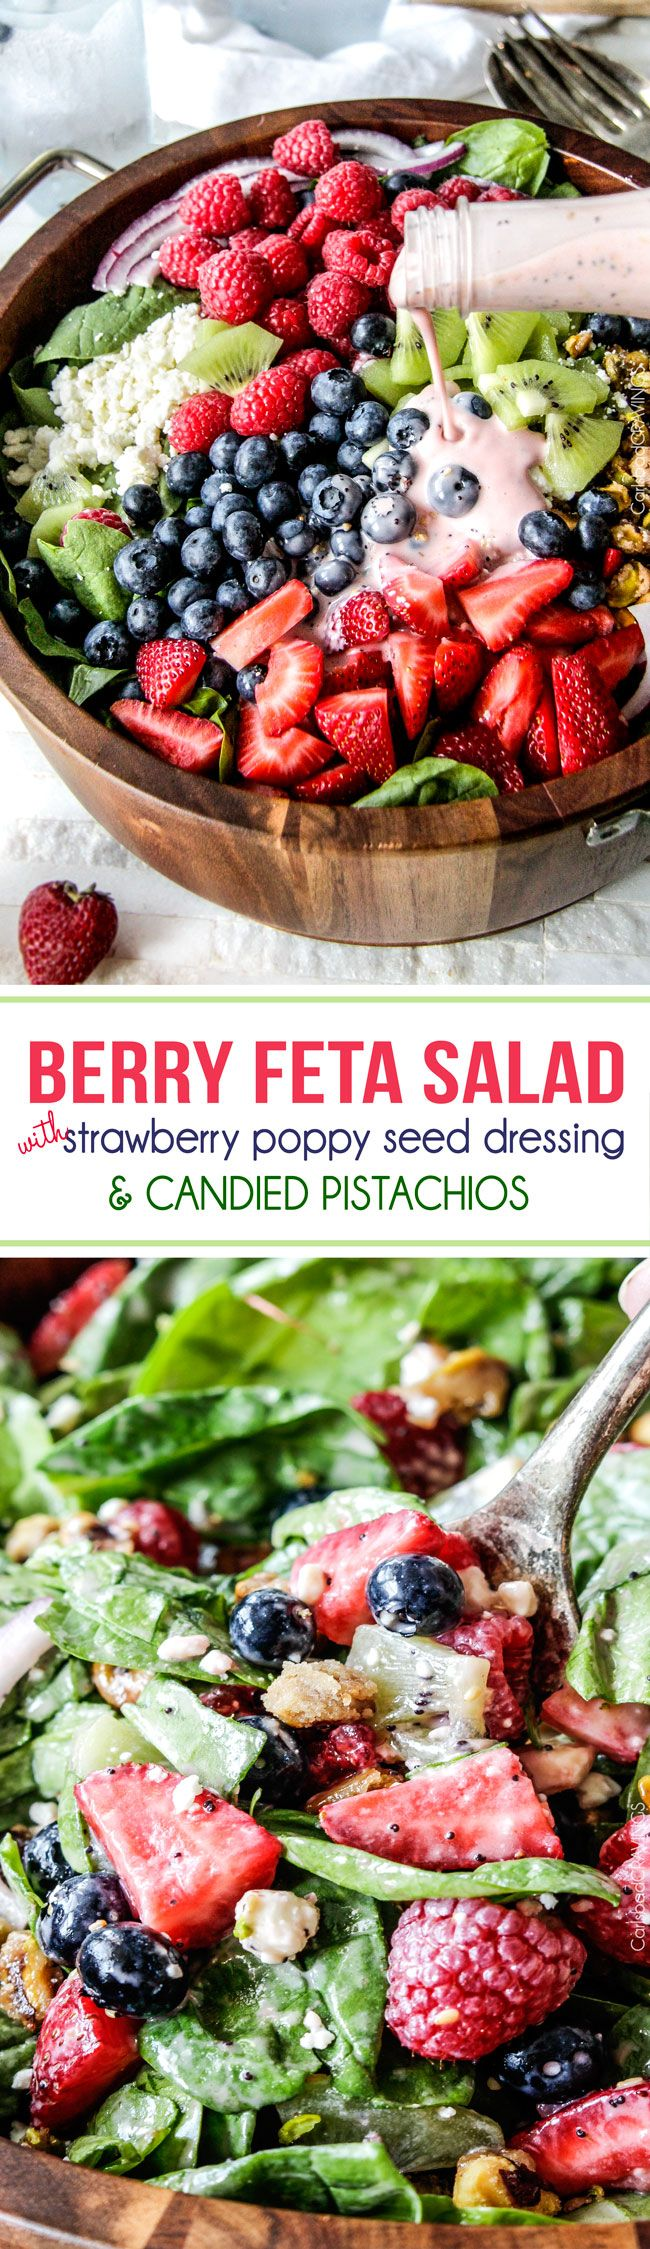 Berry Feta Spinach Salad with Creamy Strawberry Poppy Seed Dressing is so easy, delicious and beautiful for company, it is sure to become a new favorite!